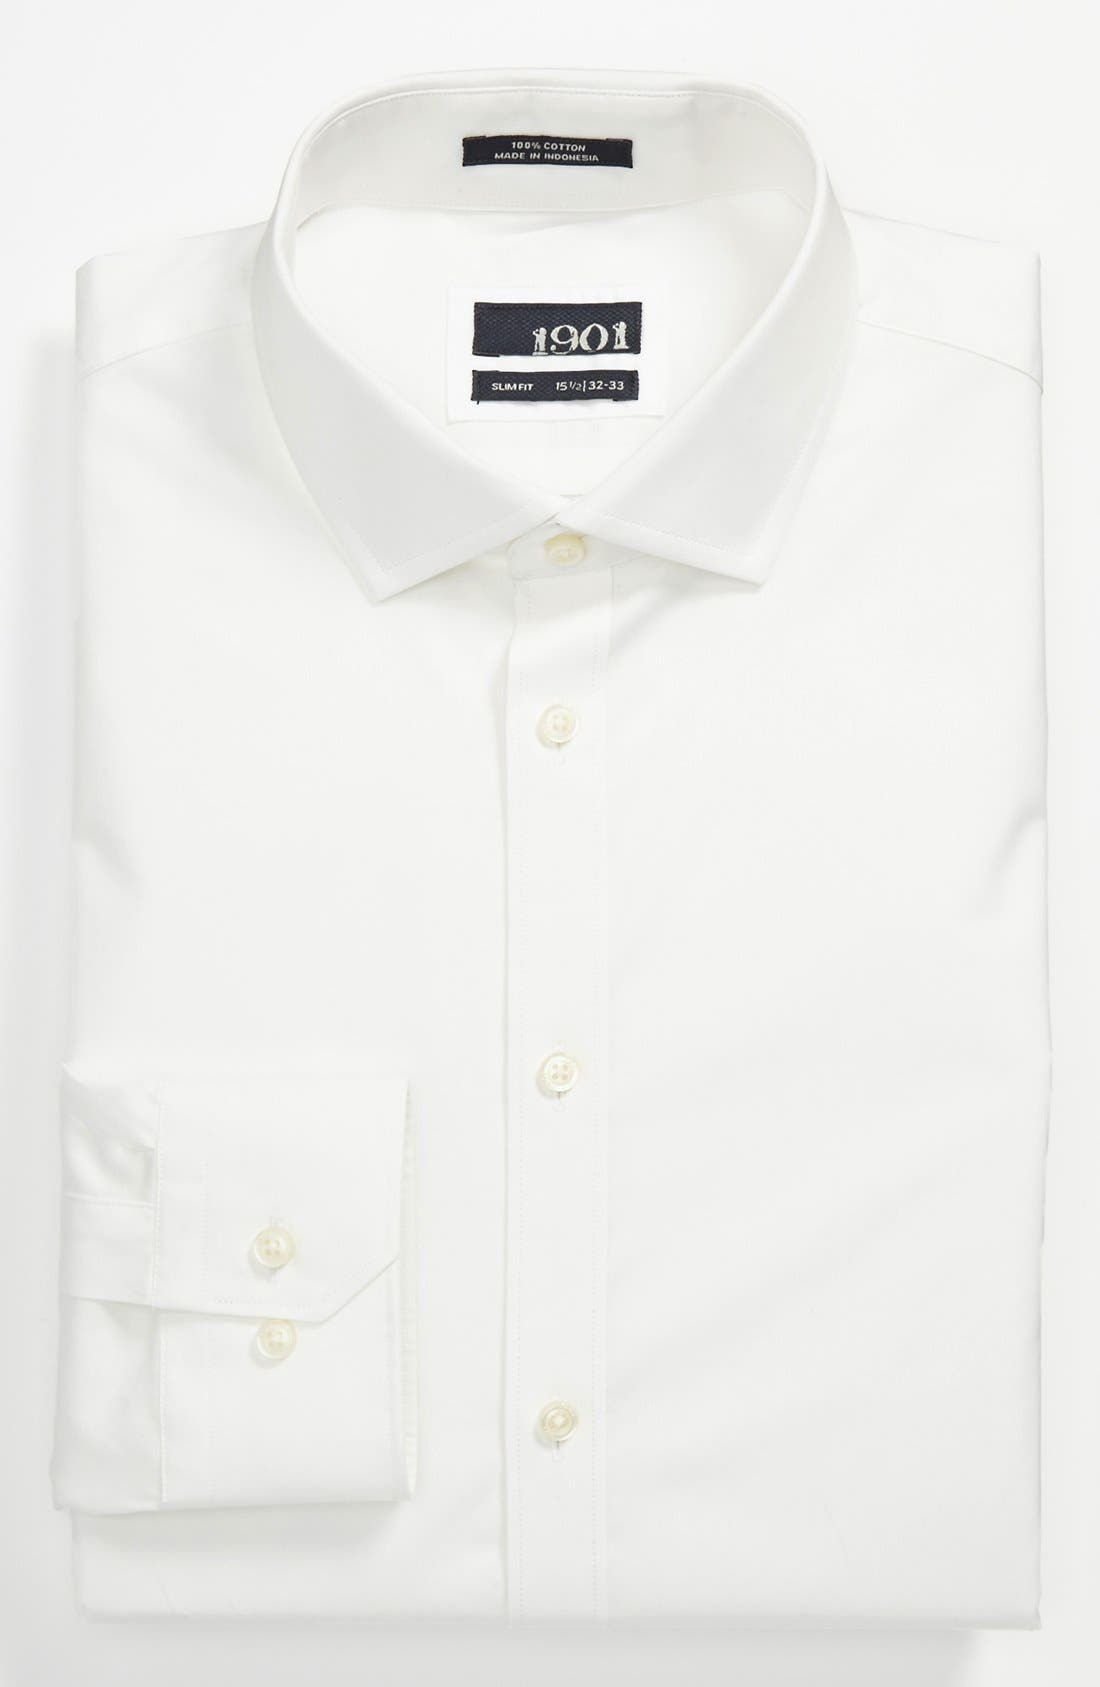 Alternate Image 1 Selected - 1901 Slim Fit Cotton Dress Shirt